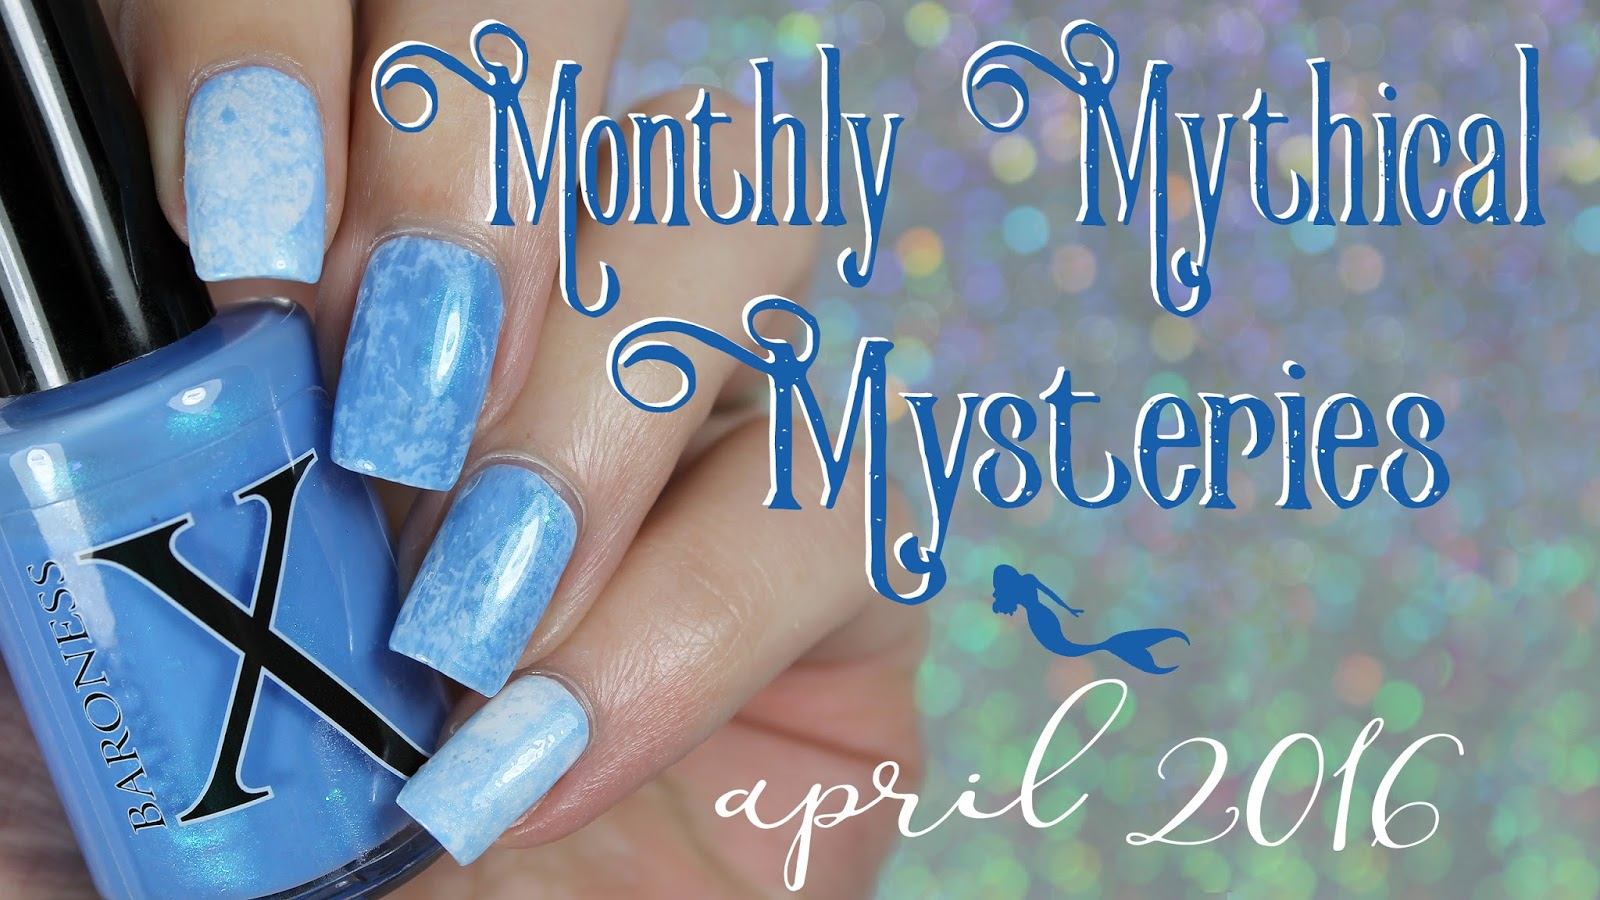 Bedlam Beauty: Baroness X Monthly Mythical Mysteries • April 2016 ...